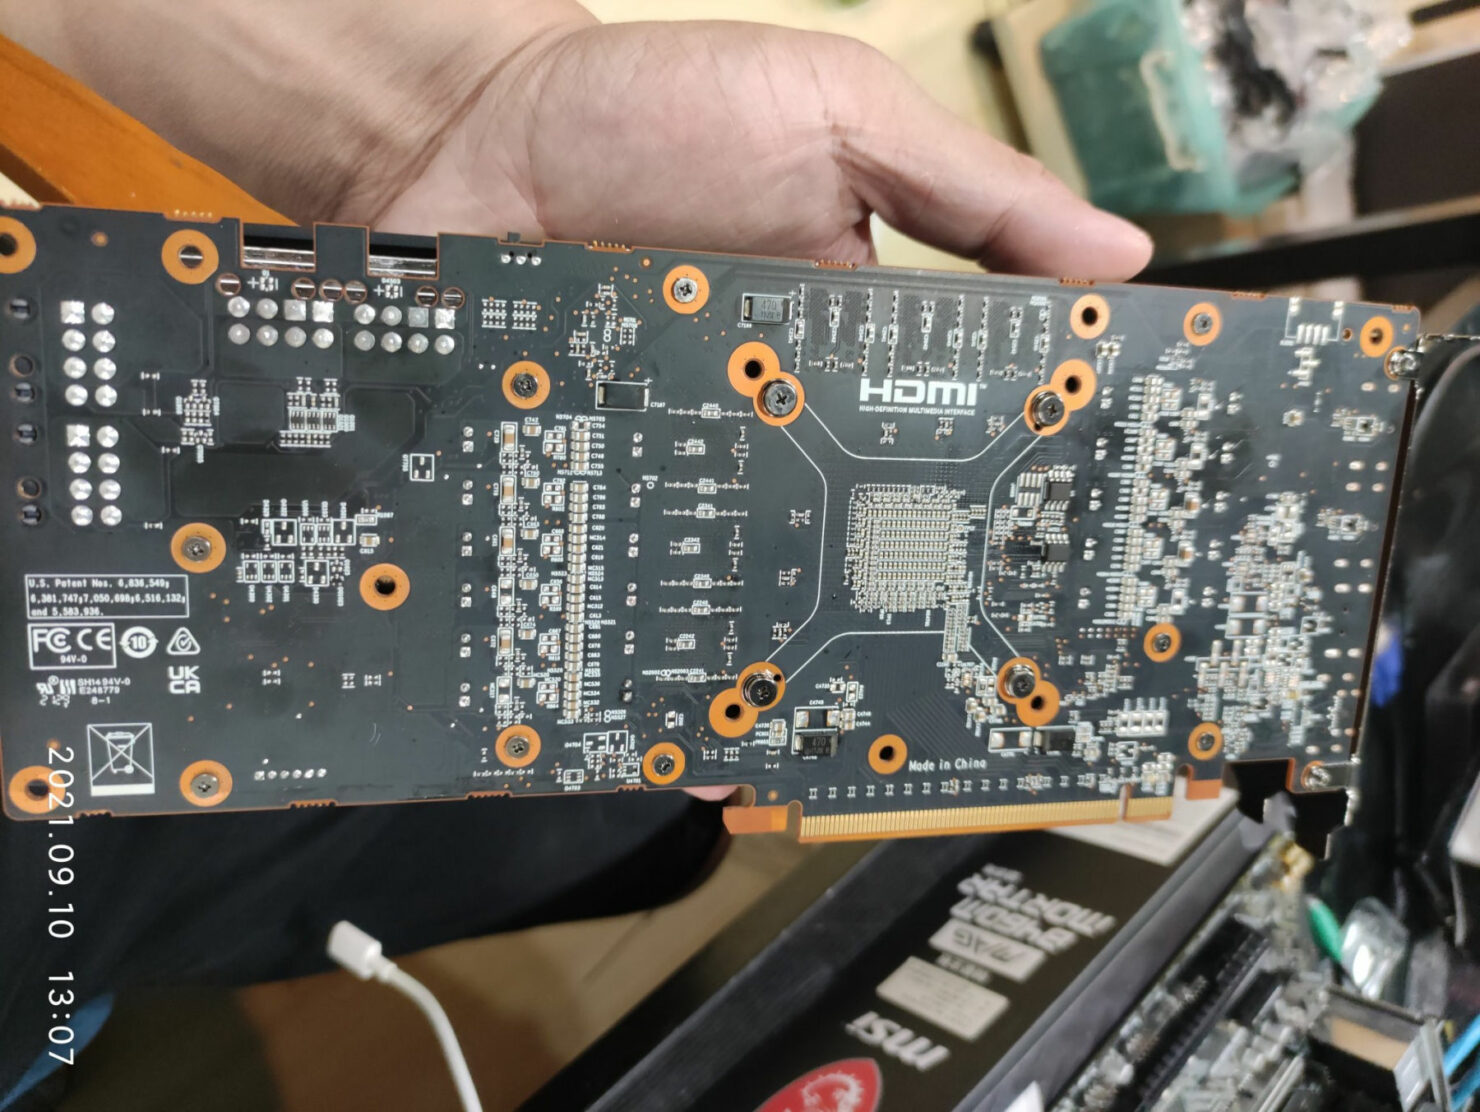 amd-mining-card-with-rdna-2-navi-22-gpu-spotted,-features-10-gb-gddr6-memory-with-39-mh/s